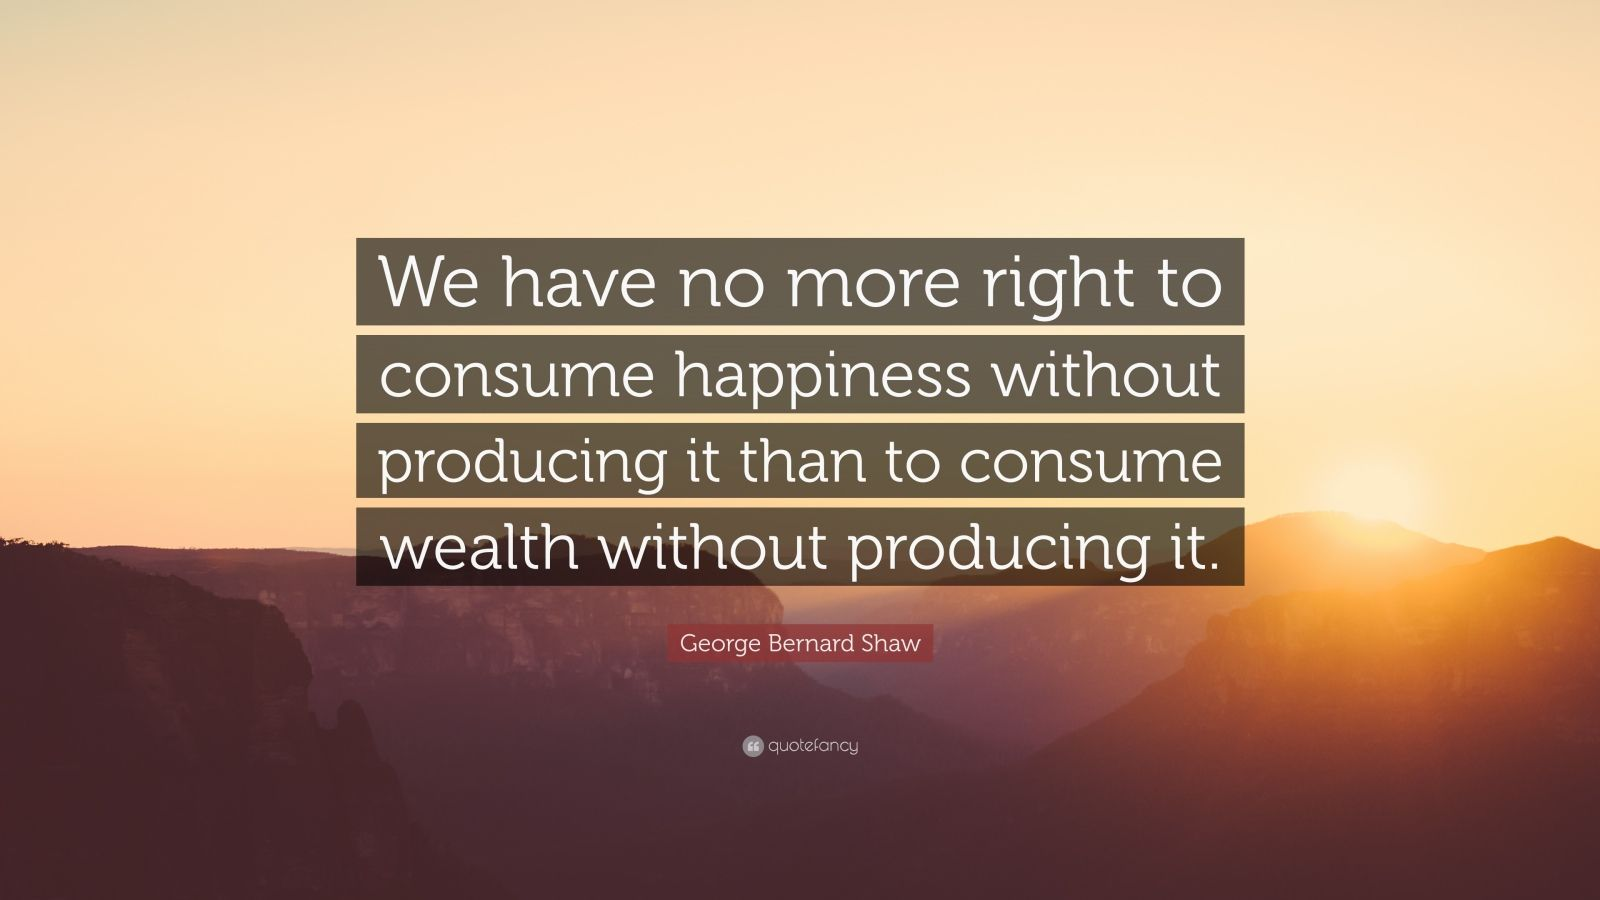 """George Bernard Shaw Quote: """"We have no more right to consume happiness without producing it than to consume wealth without producing it."""""""